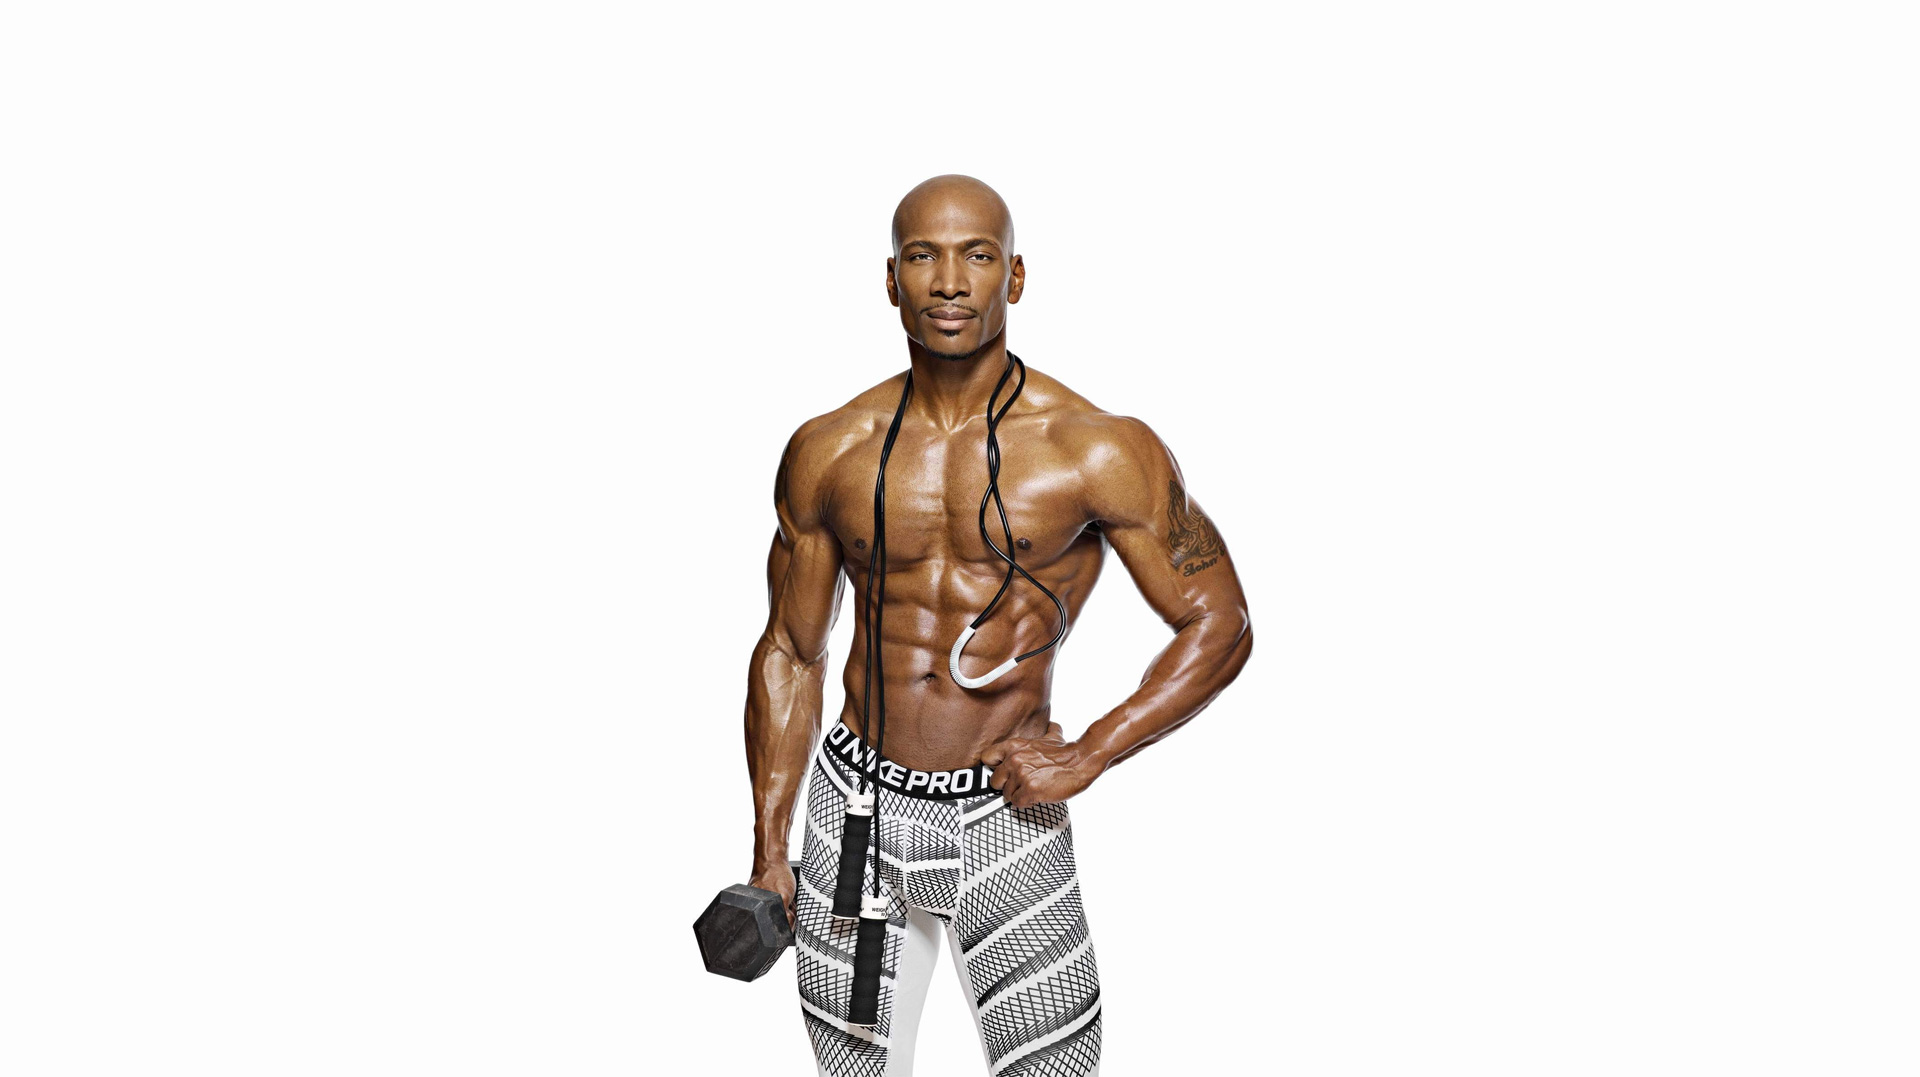 IFBB PROFESSIONAL | FITNESS TRAINER